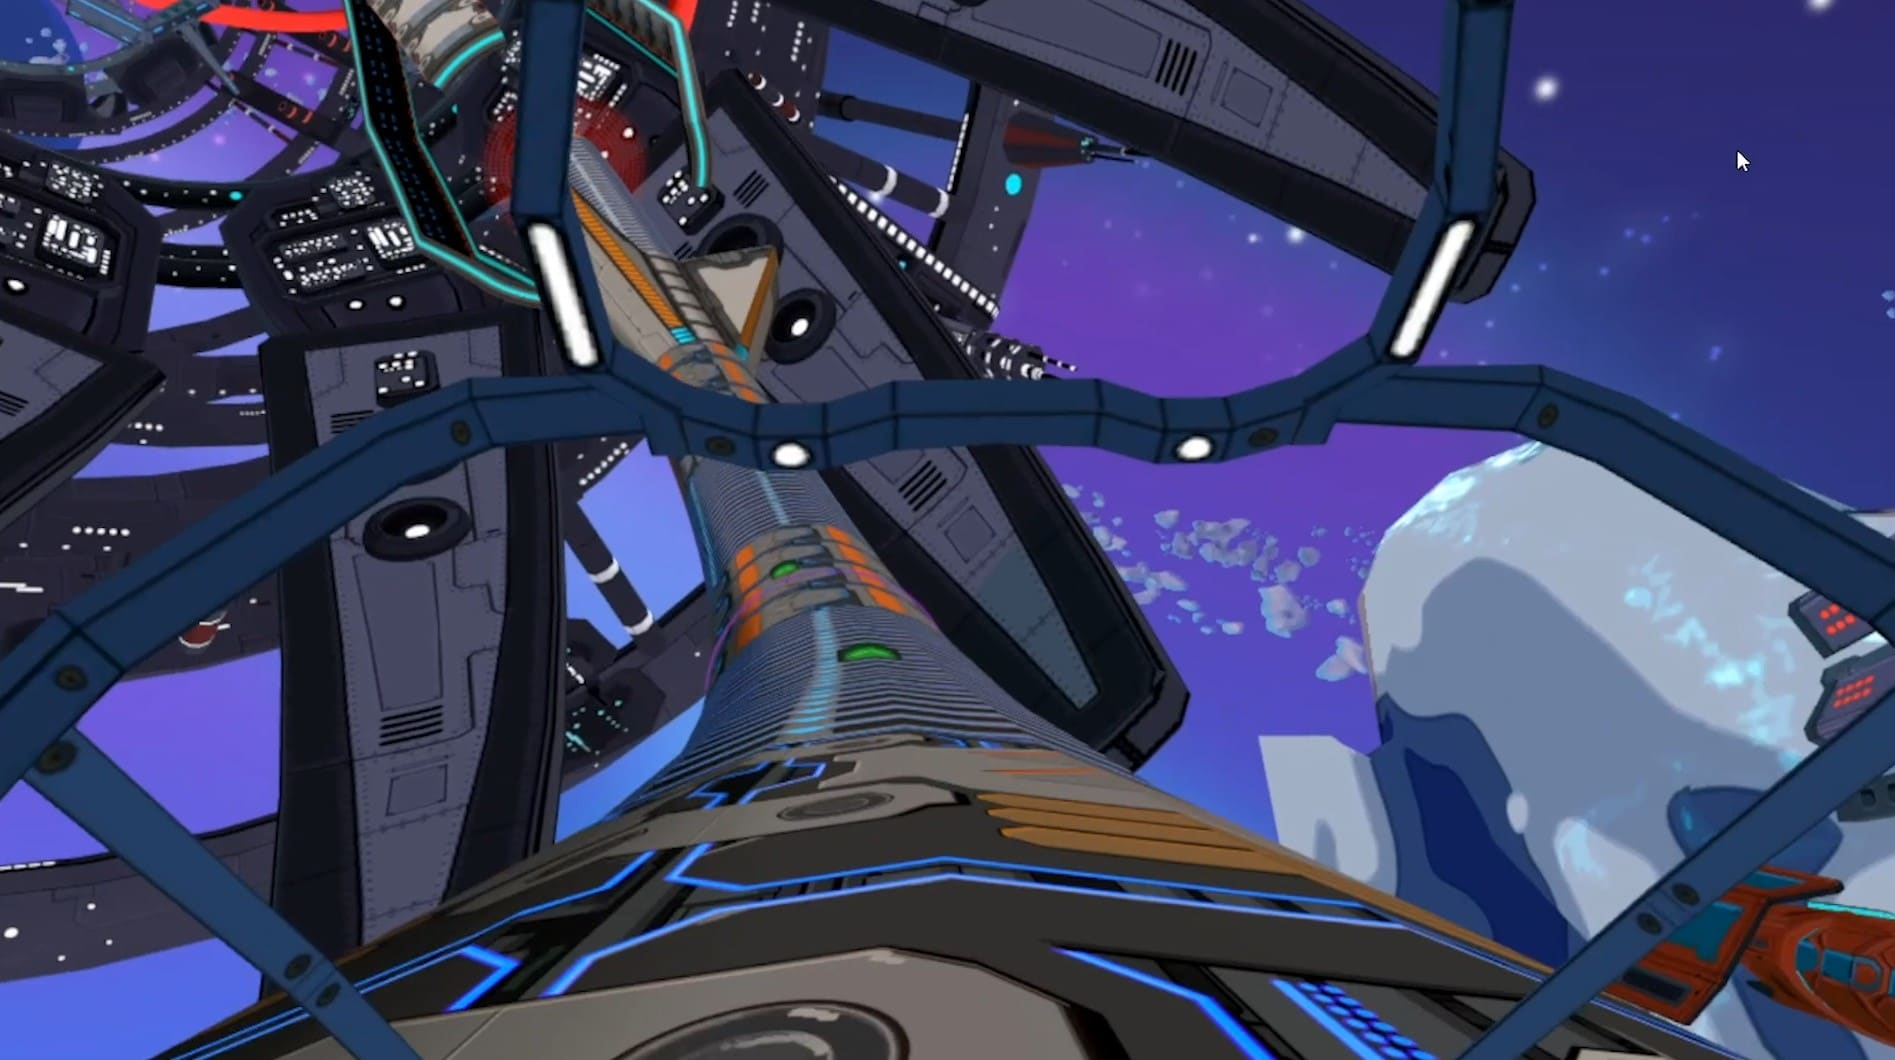 radial-g proteus quest track gameplay screenshot